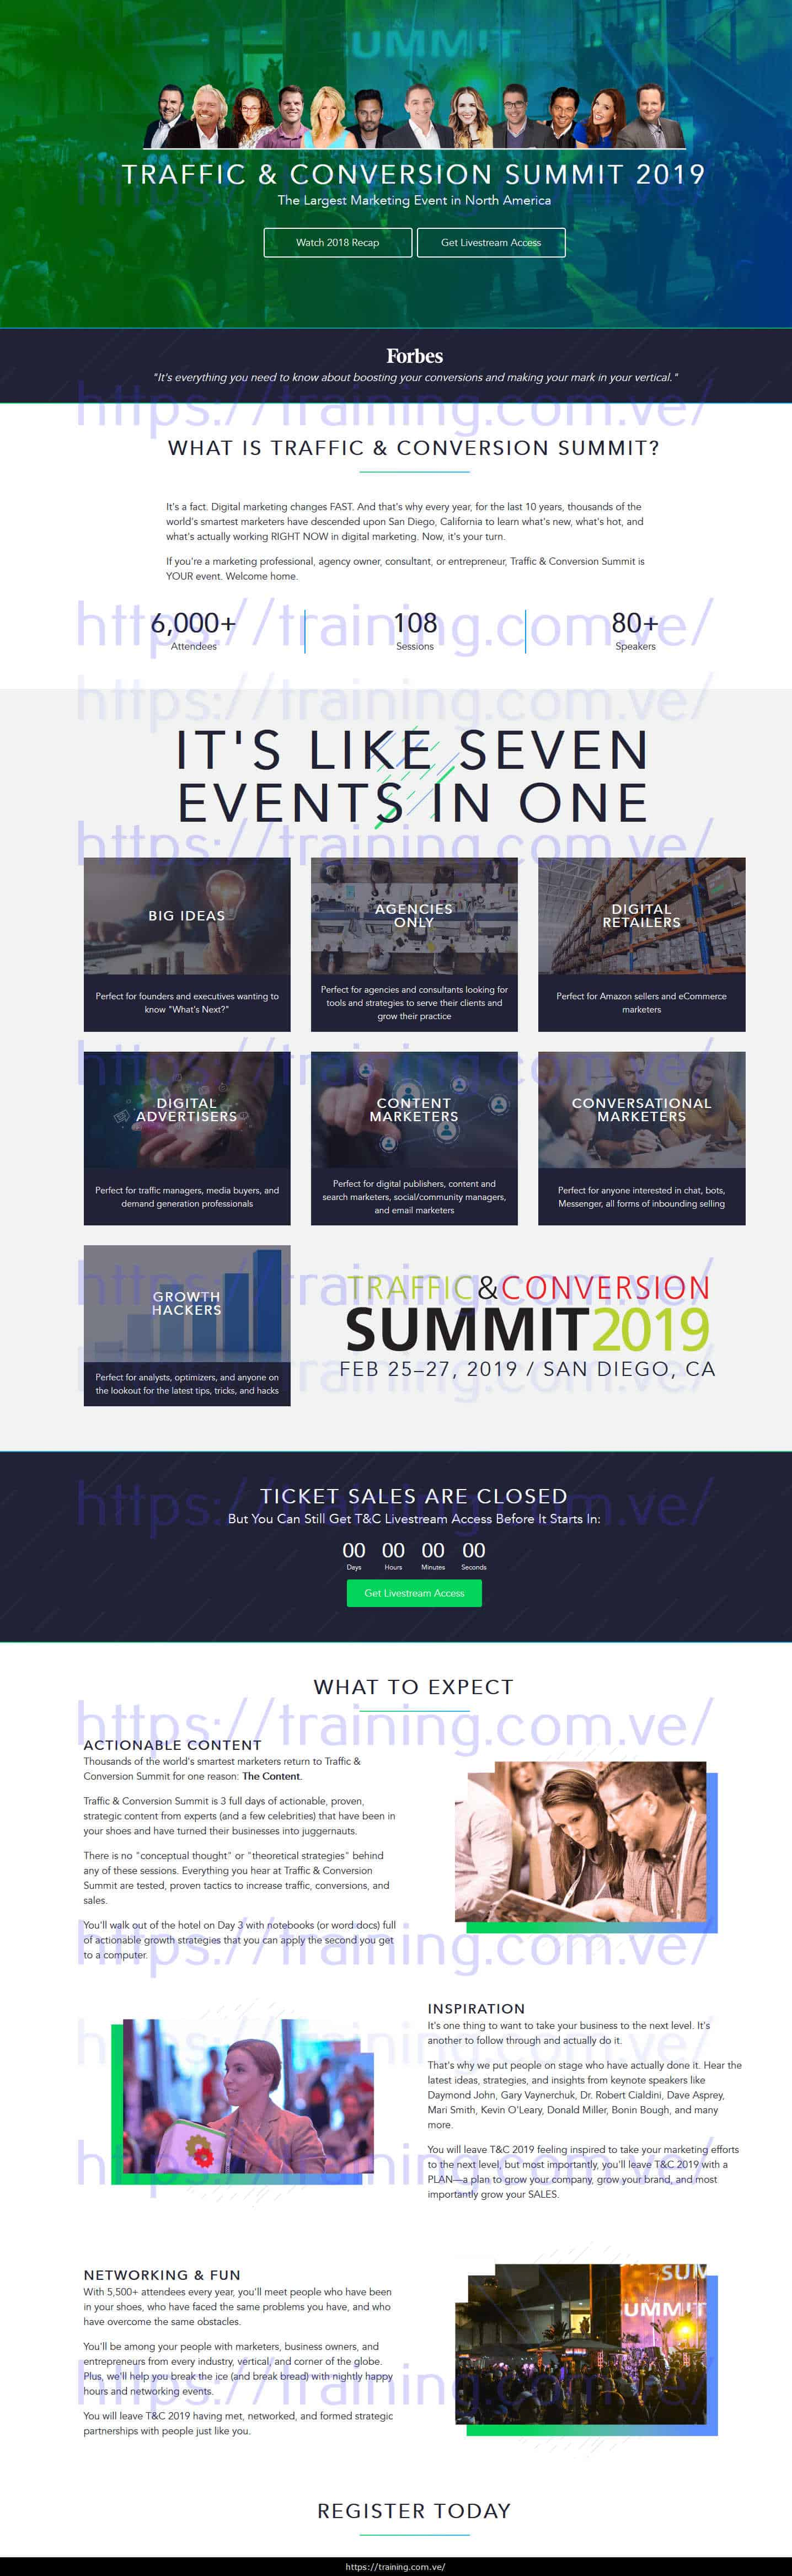 Traffic & Conversion Summit 2019 Recordings + Notes sales page